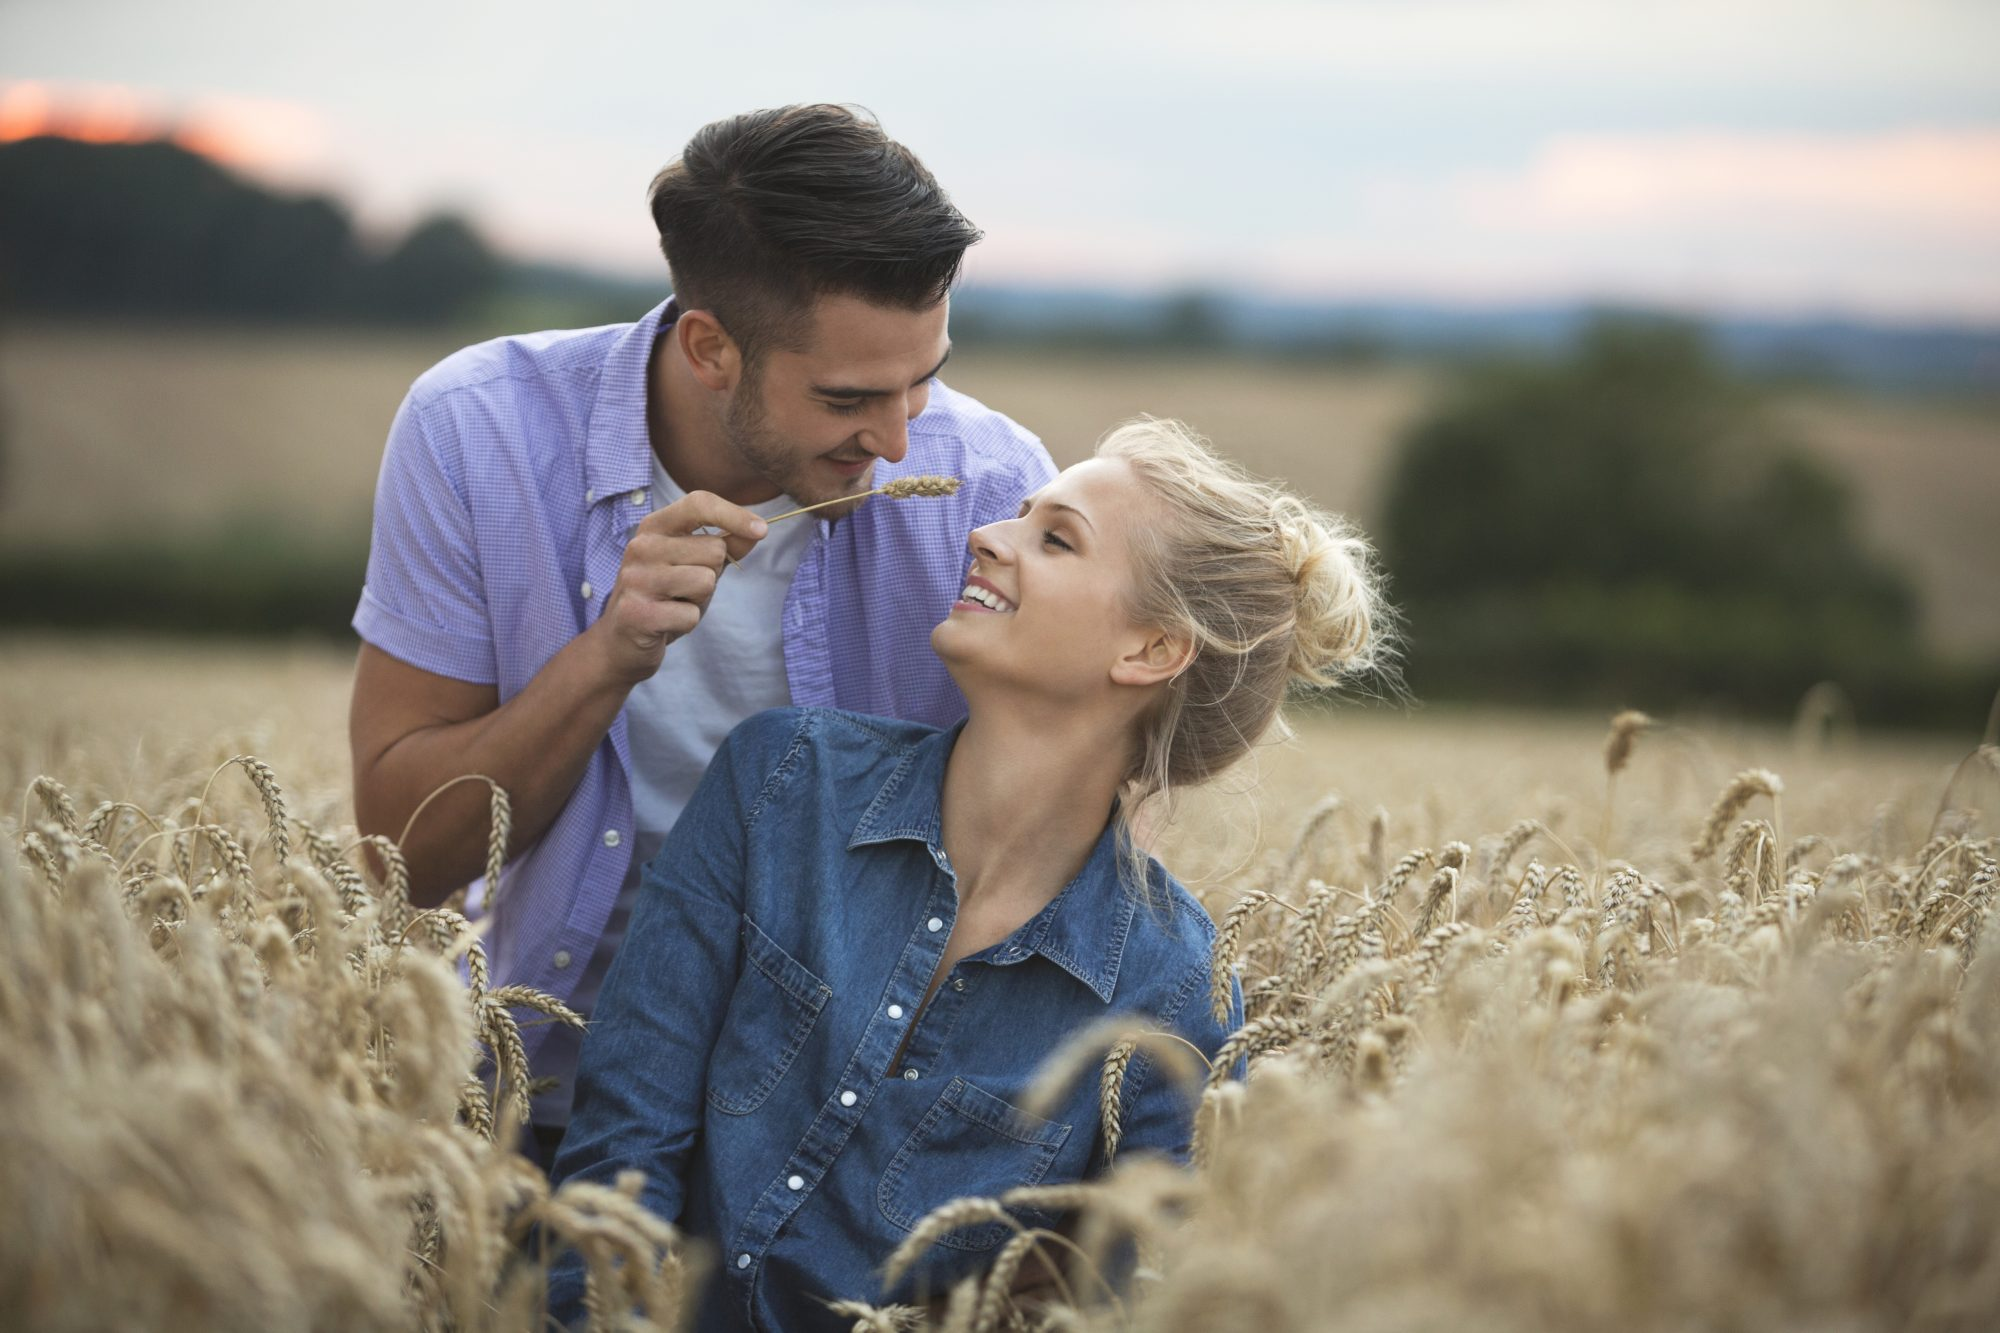 The Engagement Photo Shoot Trend We'd Like To Say Goodbye To_Getty Image of Young Couple in Wheat Field